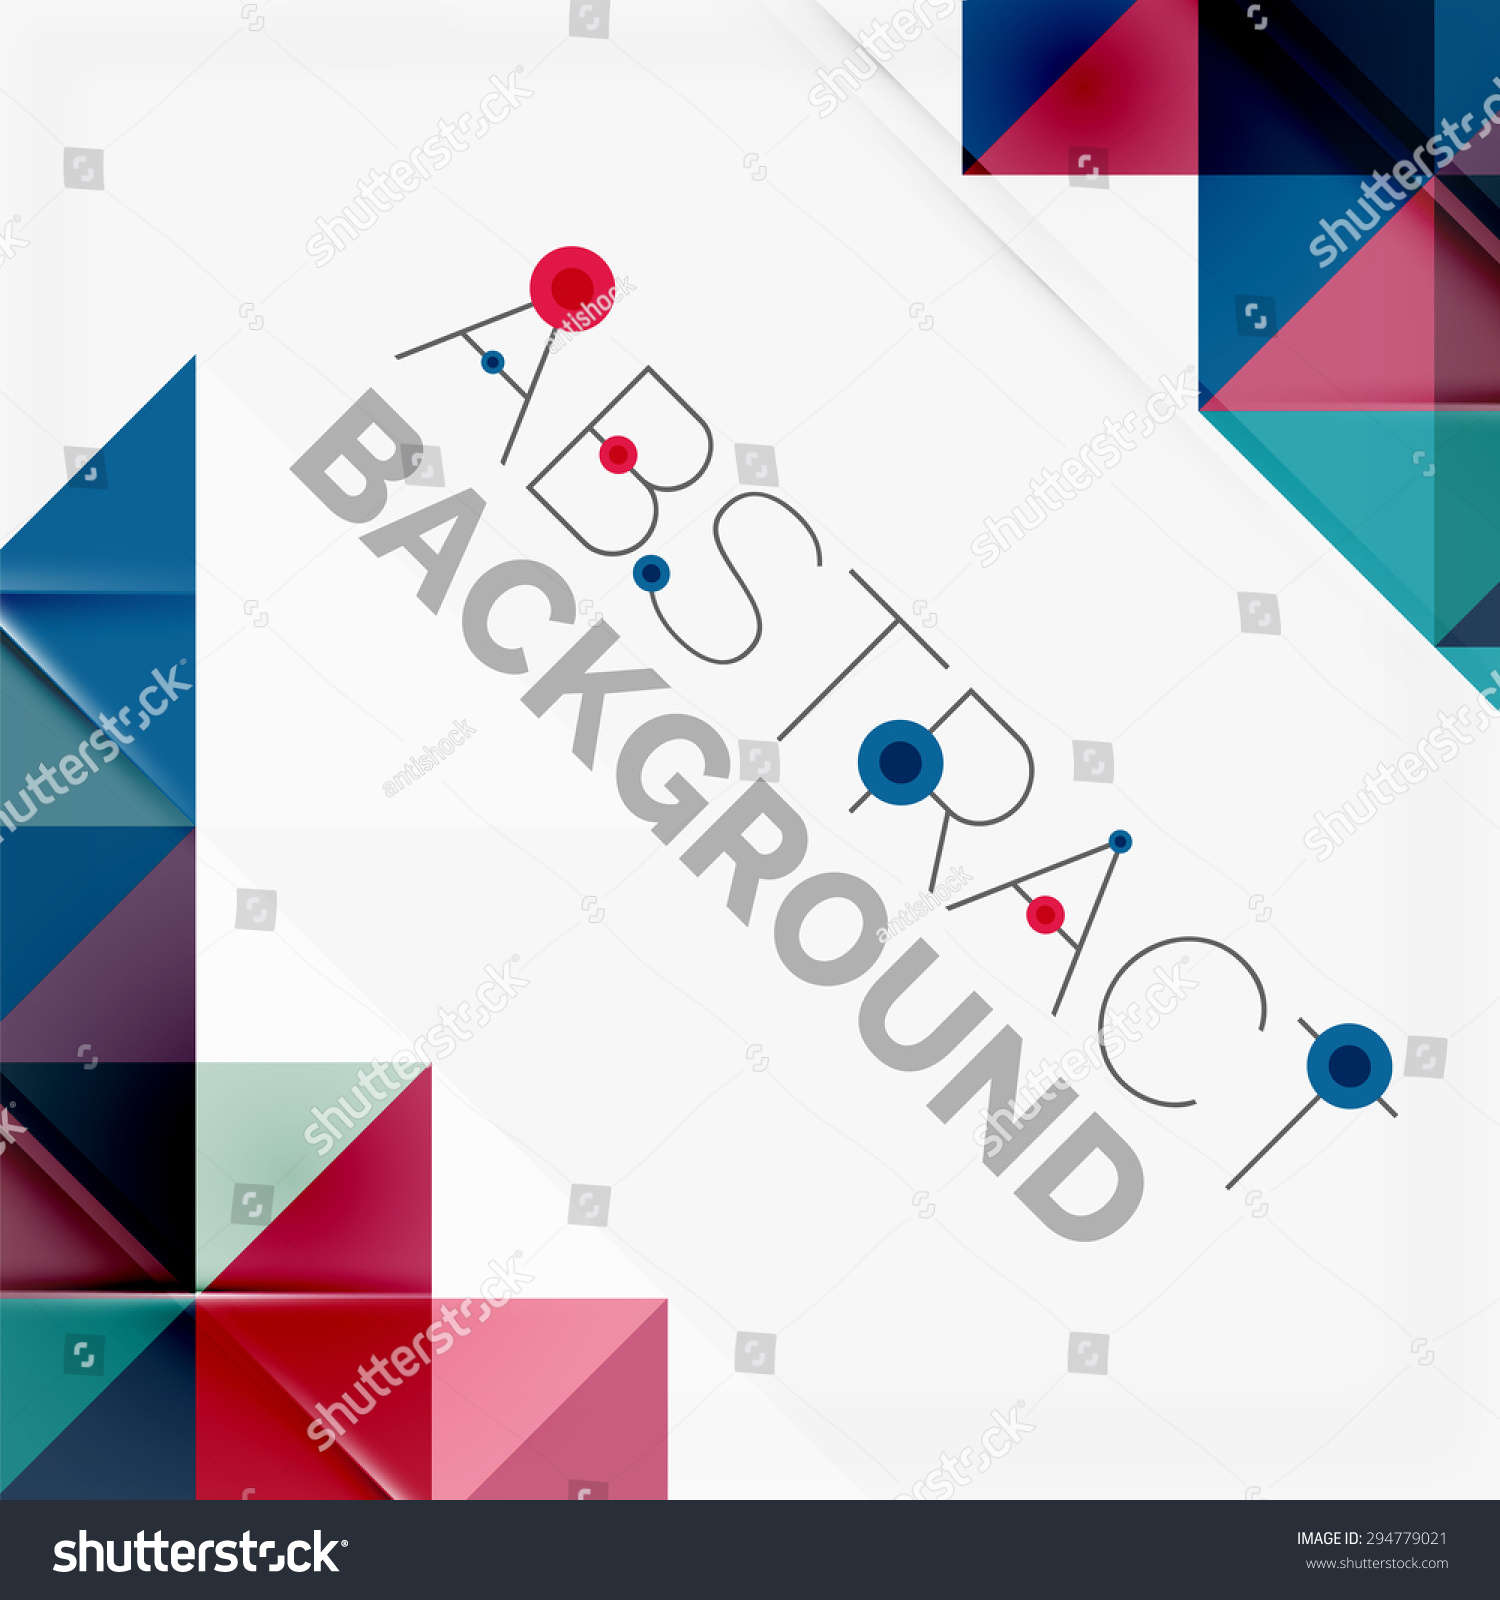 Background Book and Shape Graphics Designs amp Templates